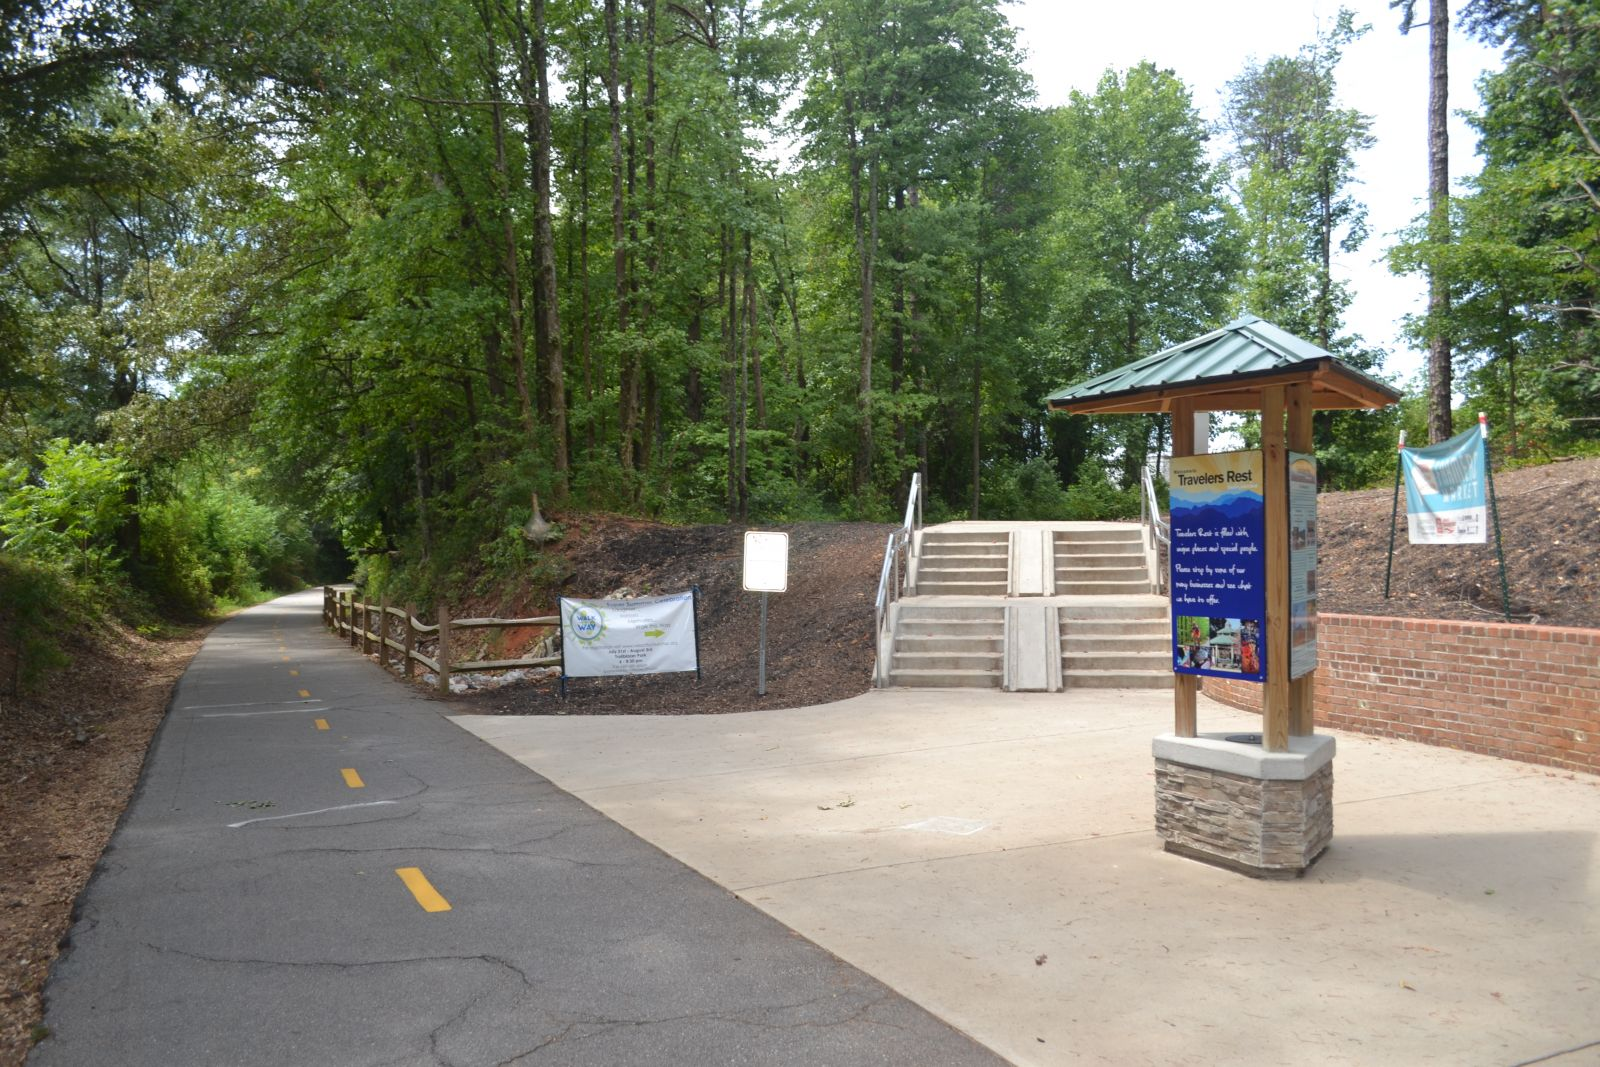 Travelers Rest has constructed connectors that connect various neighborhoods and the Trailblazer Park to the Swamp Rabbit Trail. (Photo by Teresa Cutlip)